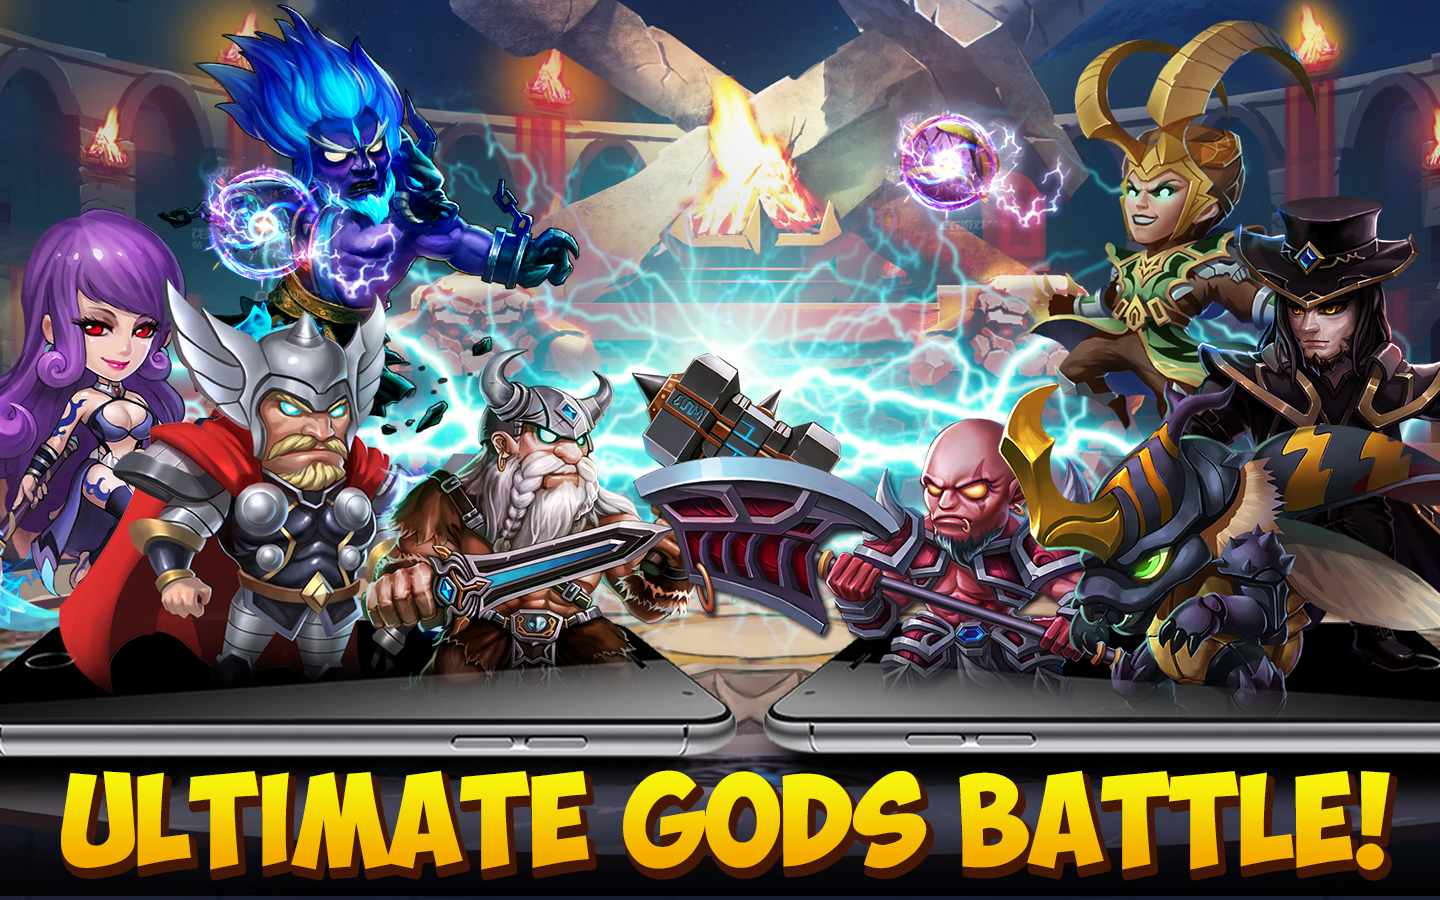 The Battle of Gods-Apocalypse 6